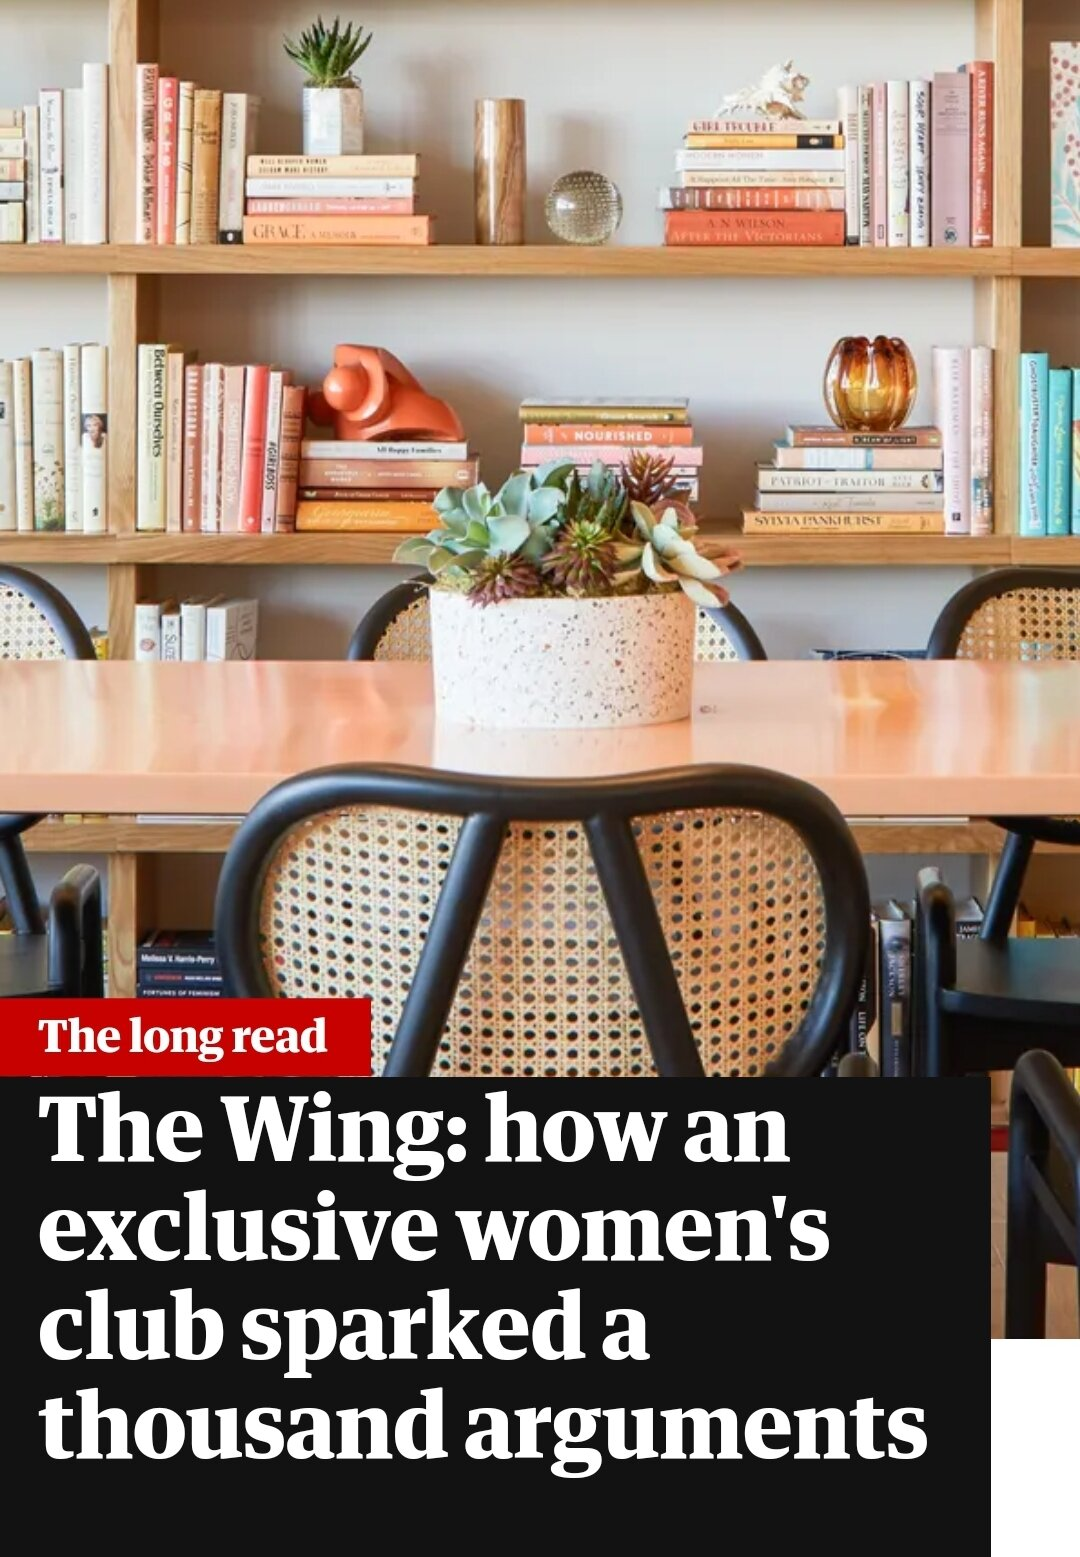 The Wing: how an exclusive women's club sparked a thousand arguments    Dr. Cadet is a featured perspective in this well written piece by   Linda Kinstler  . The Wing, which Dr. Cadet is a member, has been attempting to recover from a racist  incident  with now a former black member in their Los Angeles location. As you know, Dr. Cadet advocates for WOC, POC, marginalized communities, but especially black women.  Take some time to read this thought provoking   article  .